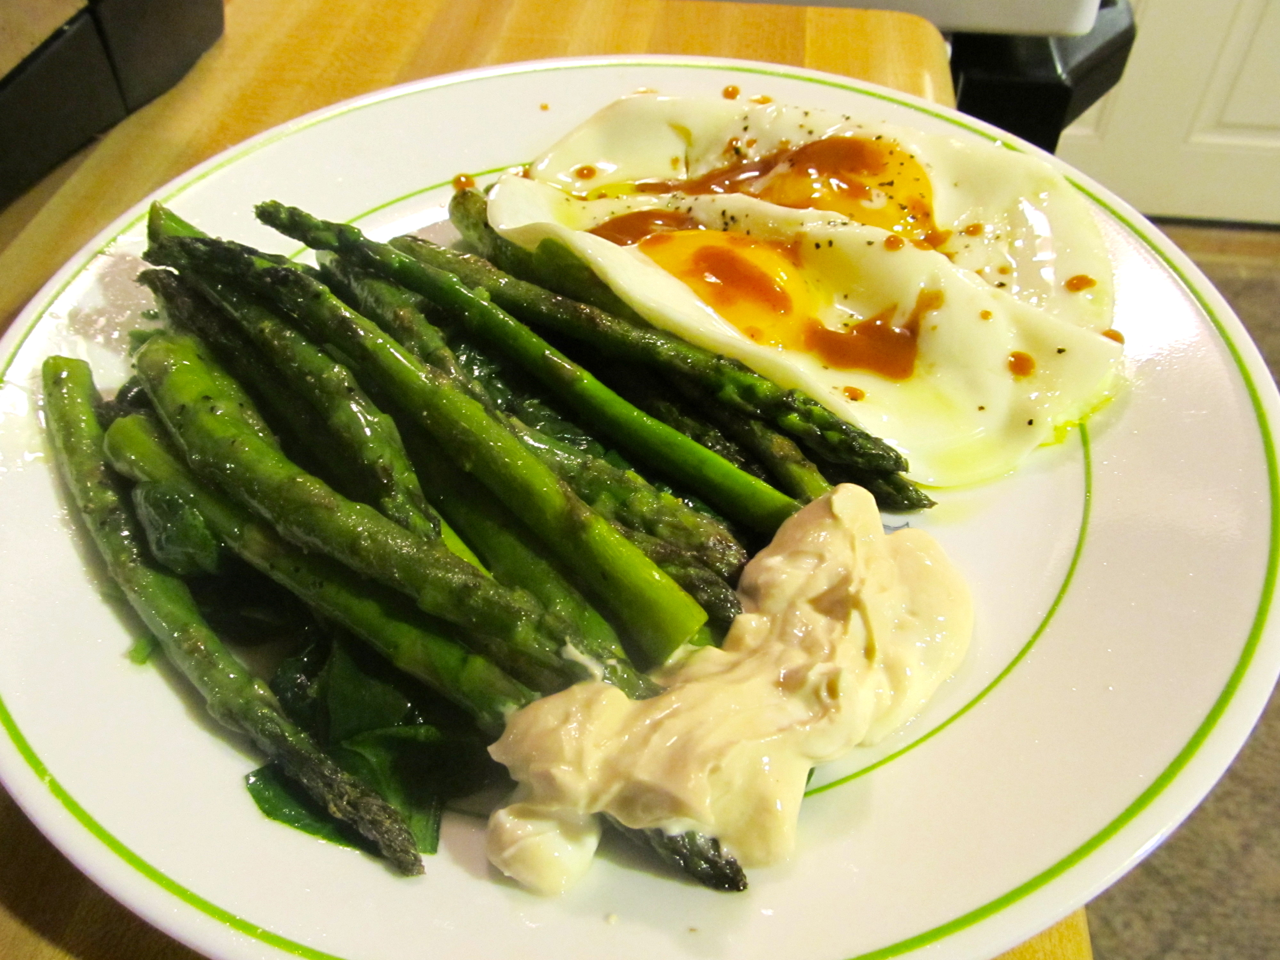 Eggs with enchilada sauce and sautéed asparagus and spinach with yogurt, mustard, and soy dressing